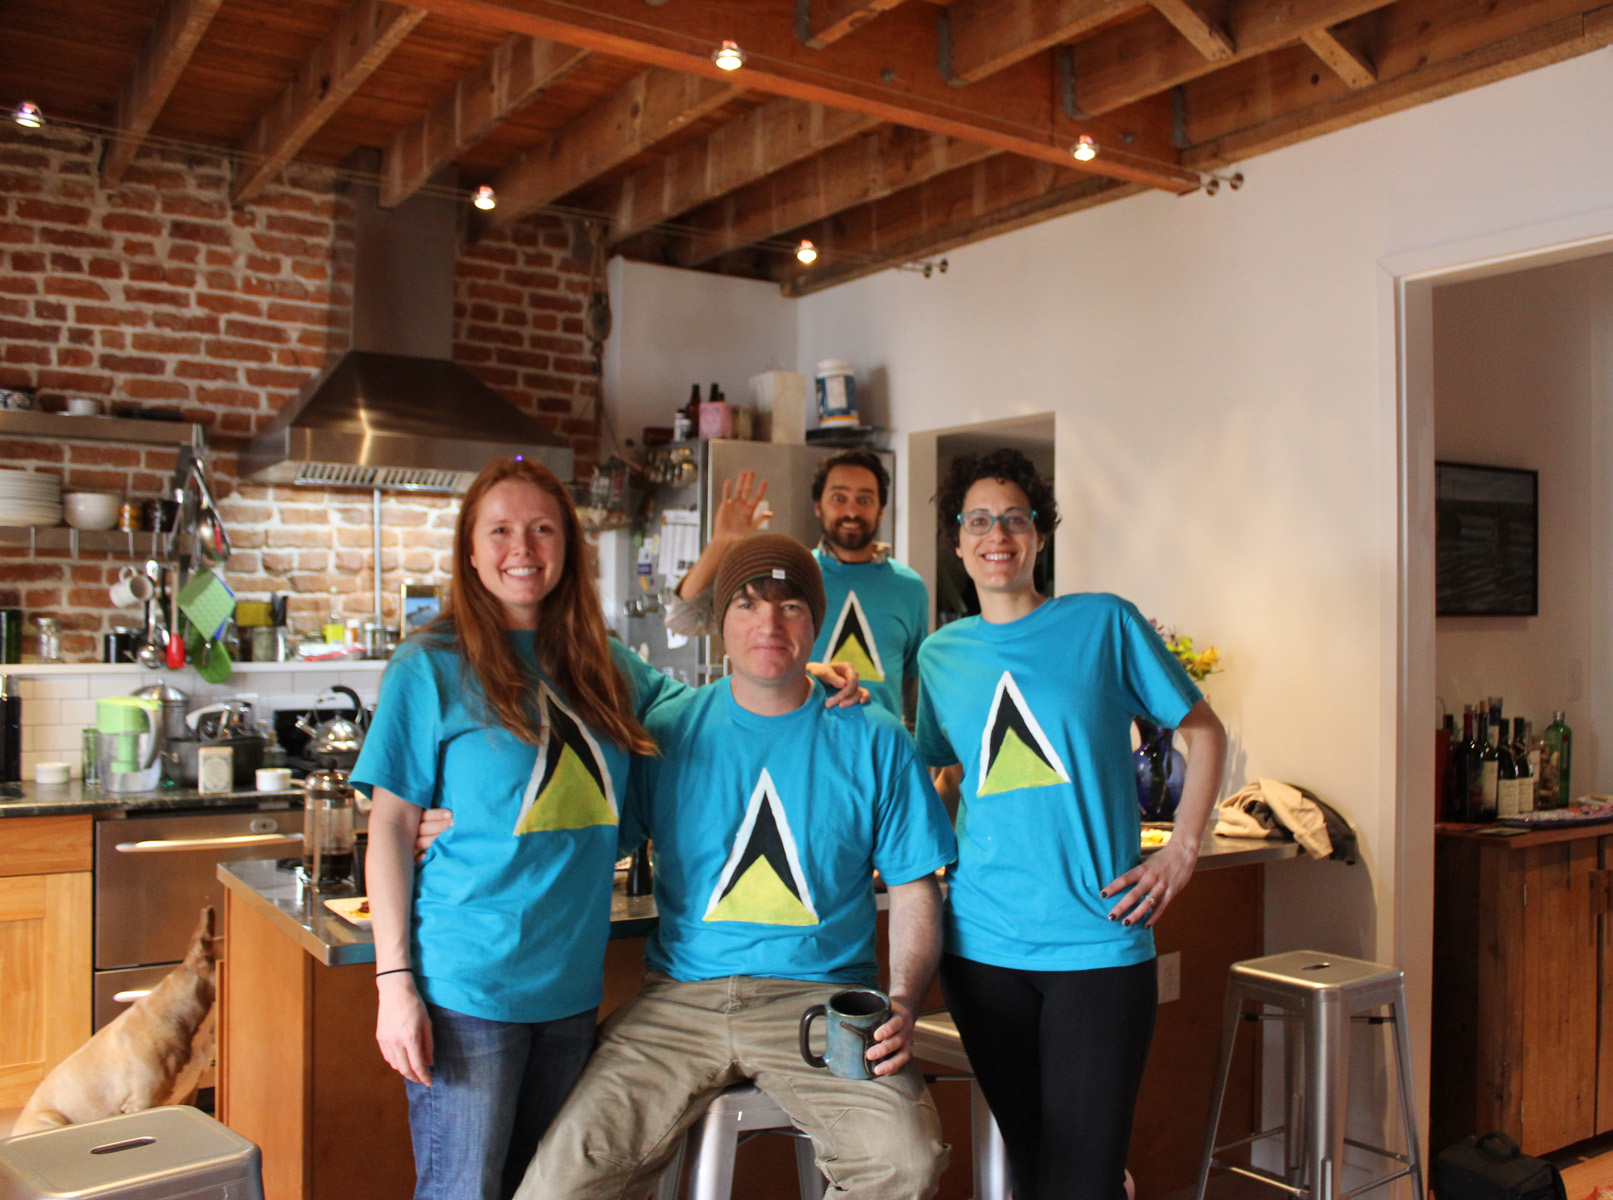 We celebrate St. Lucia's independence day (Feb 22) with tee-shirts and breakfast with friends.